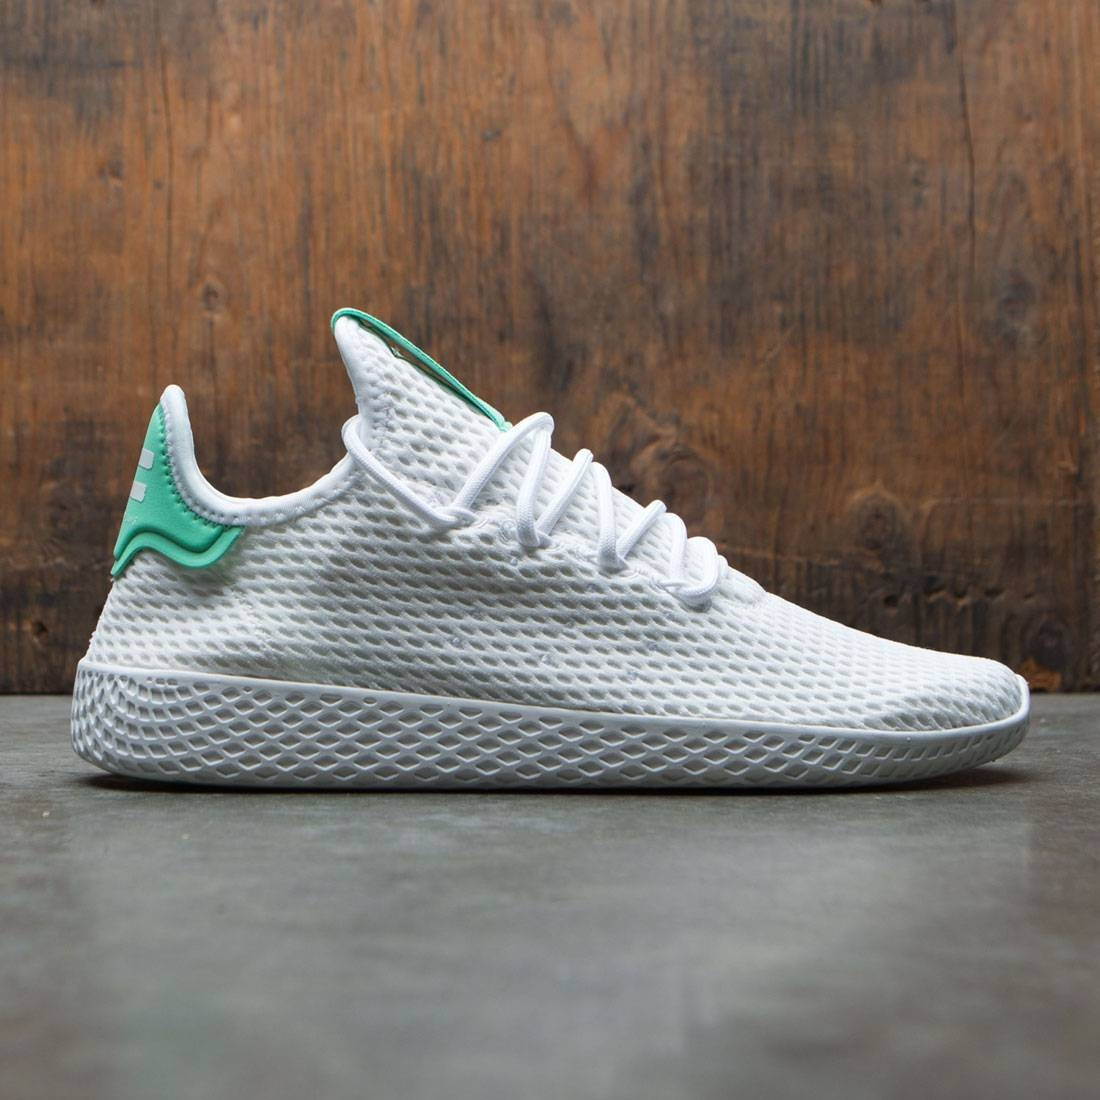 Adidas x Pharrell Williams Men Tennis Hu white footwear white green glow 5d4e4586a